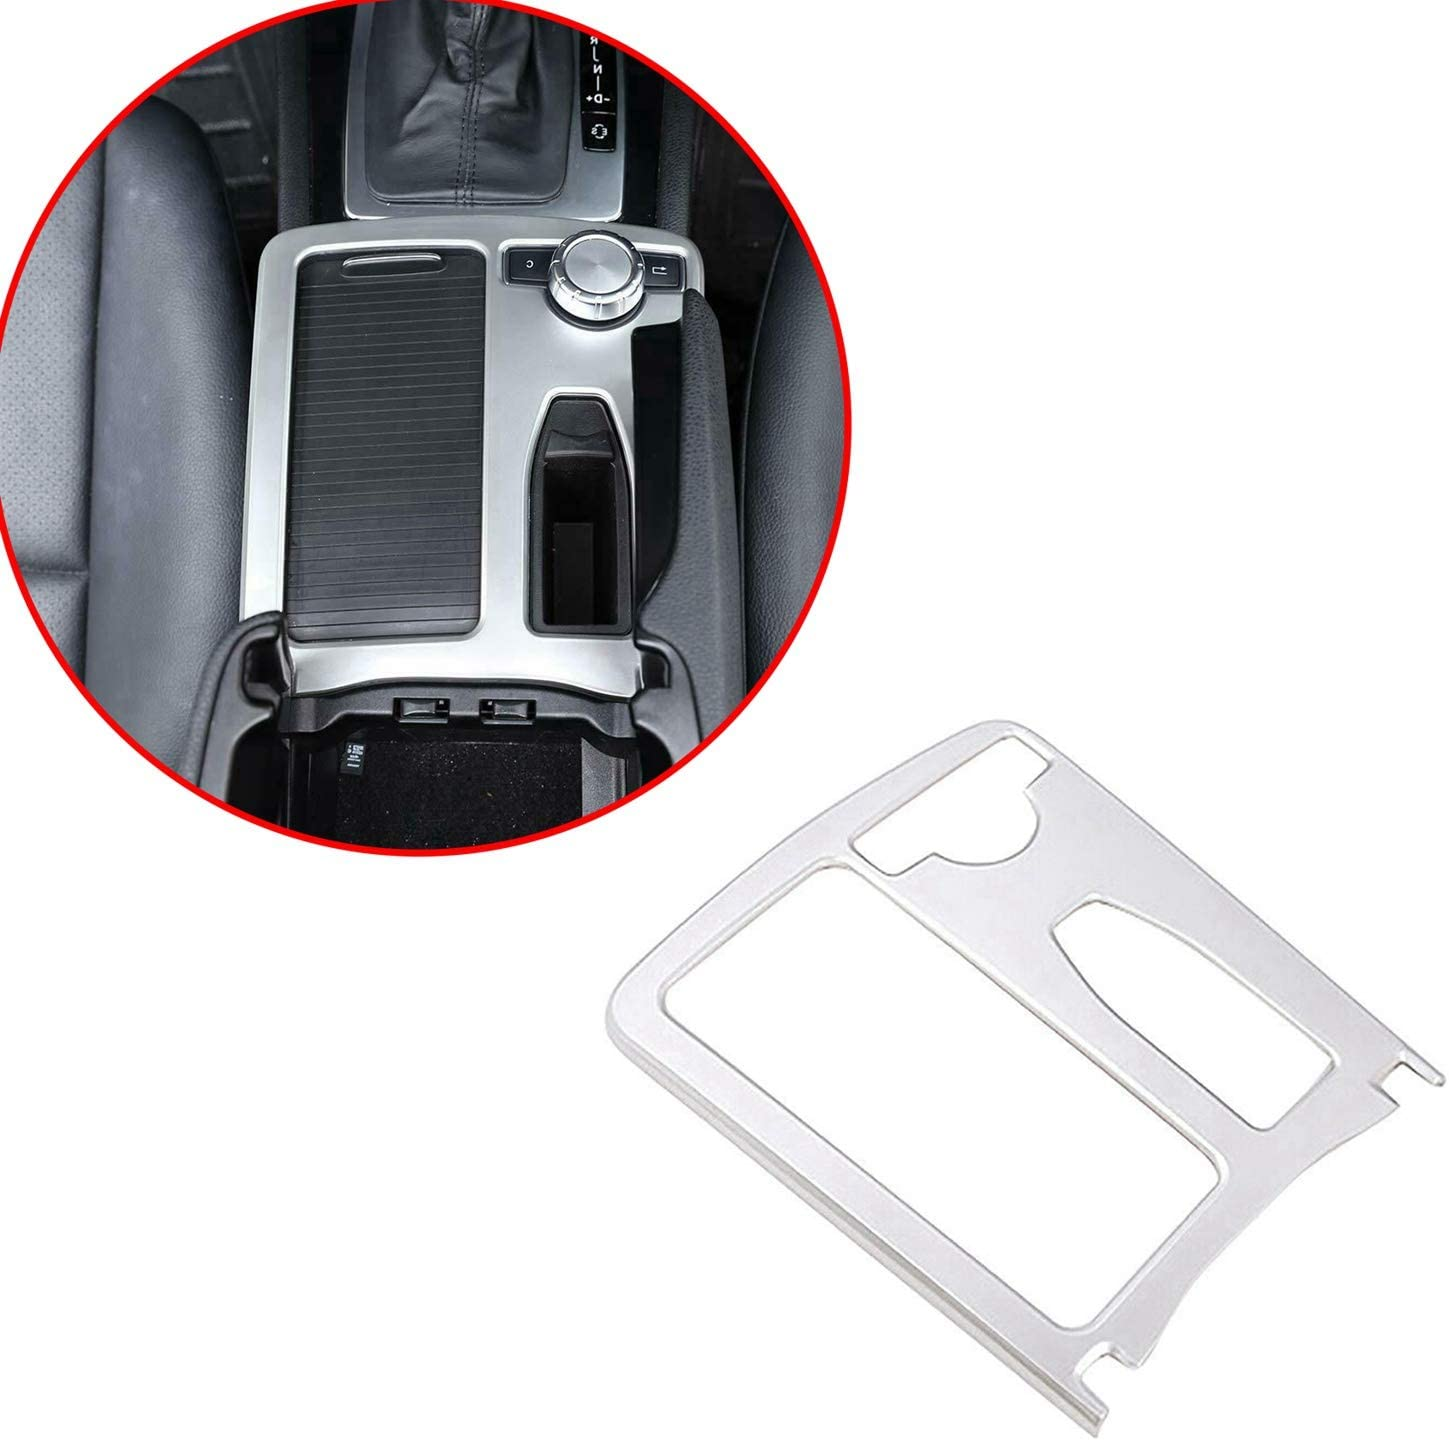 Semoic Car Silver ABS Drive Right Central Console Cup Holder Frame Cover Trim for Mercedes E Class W212 2010-2011